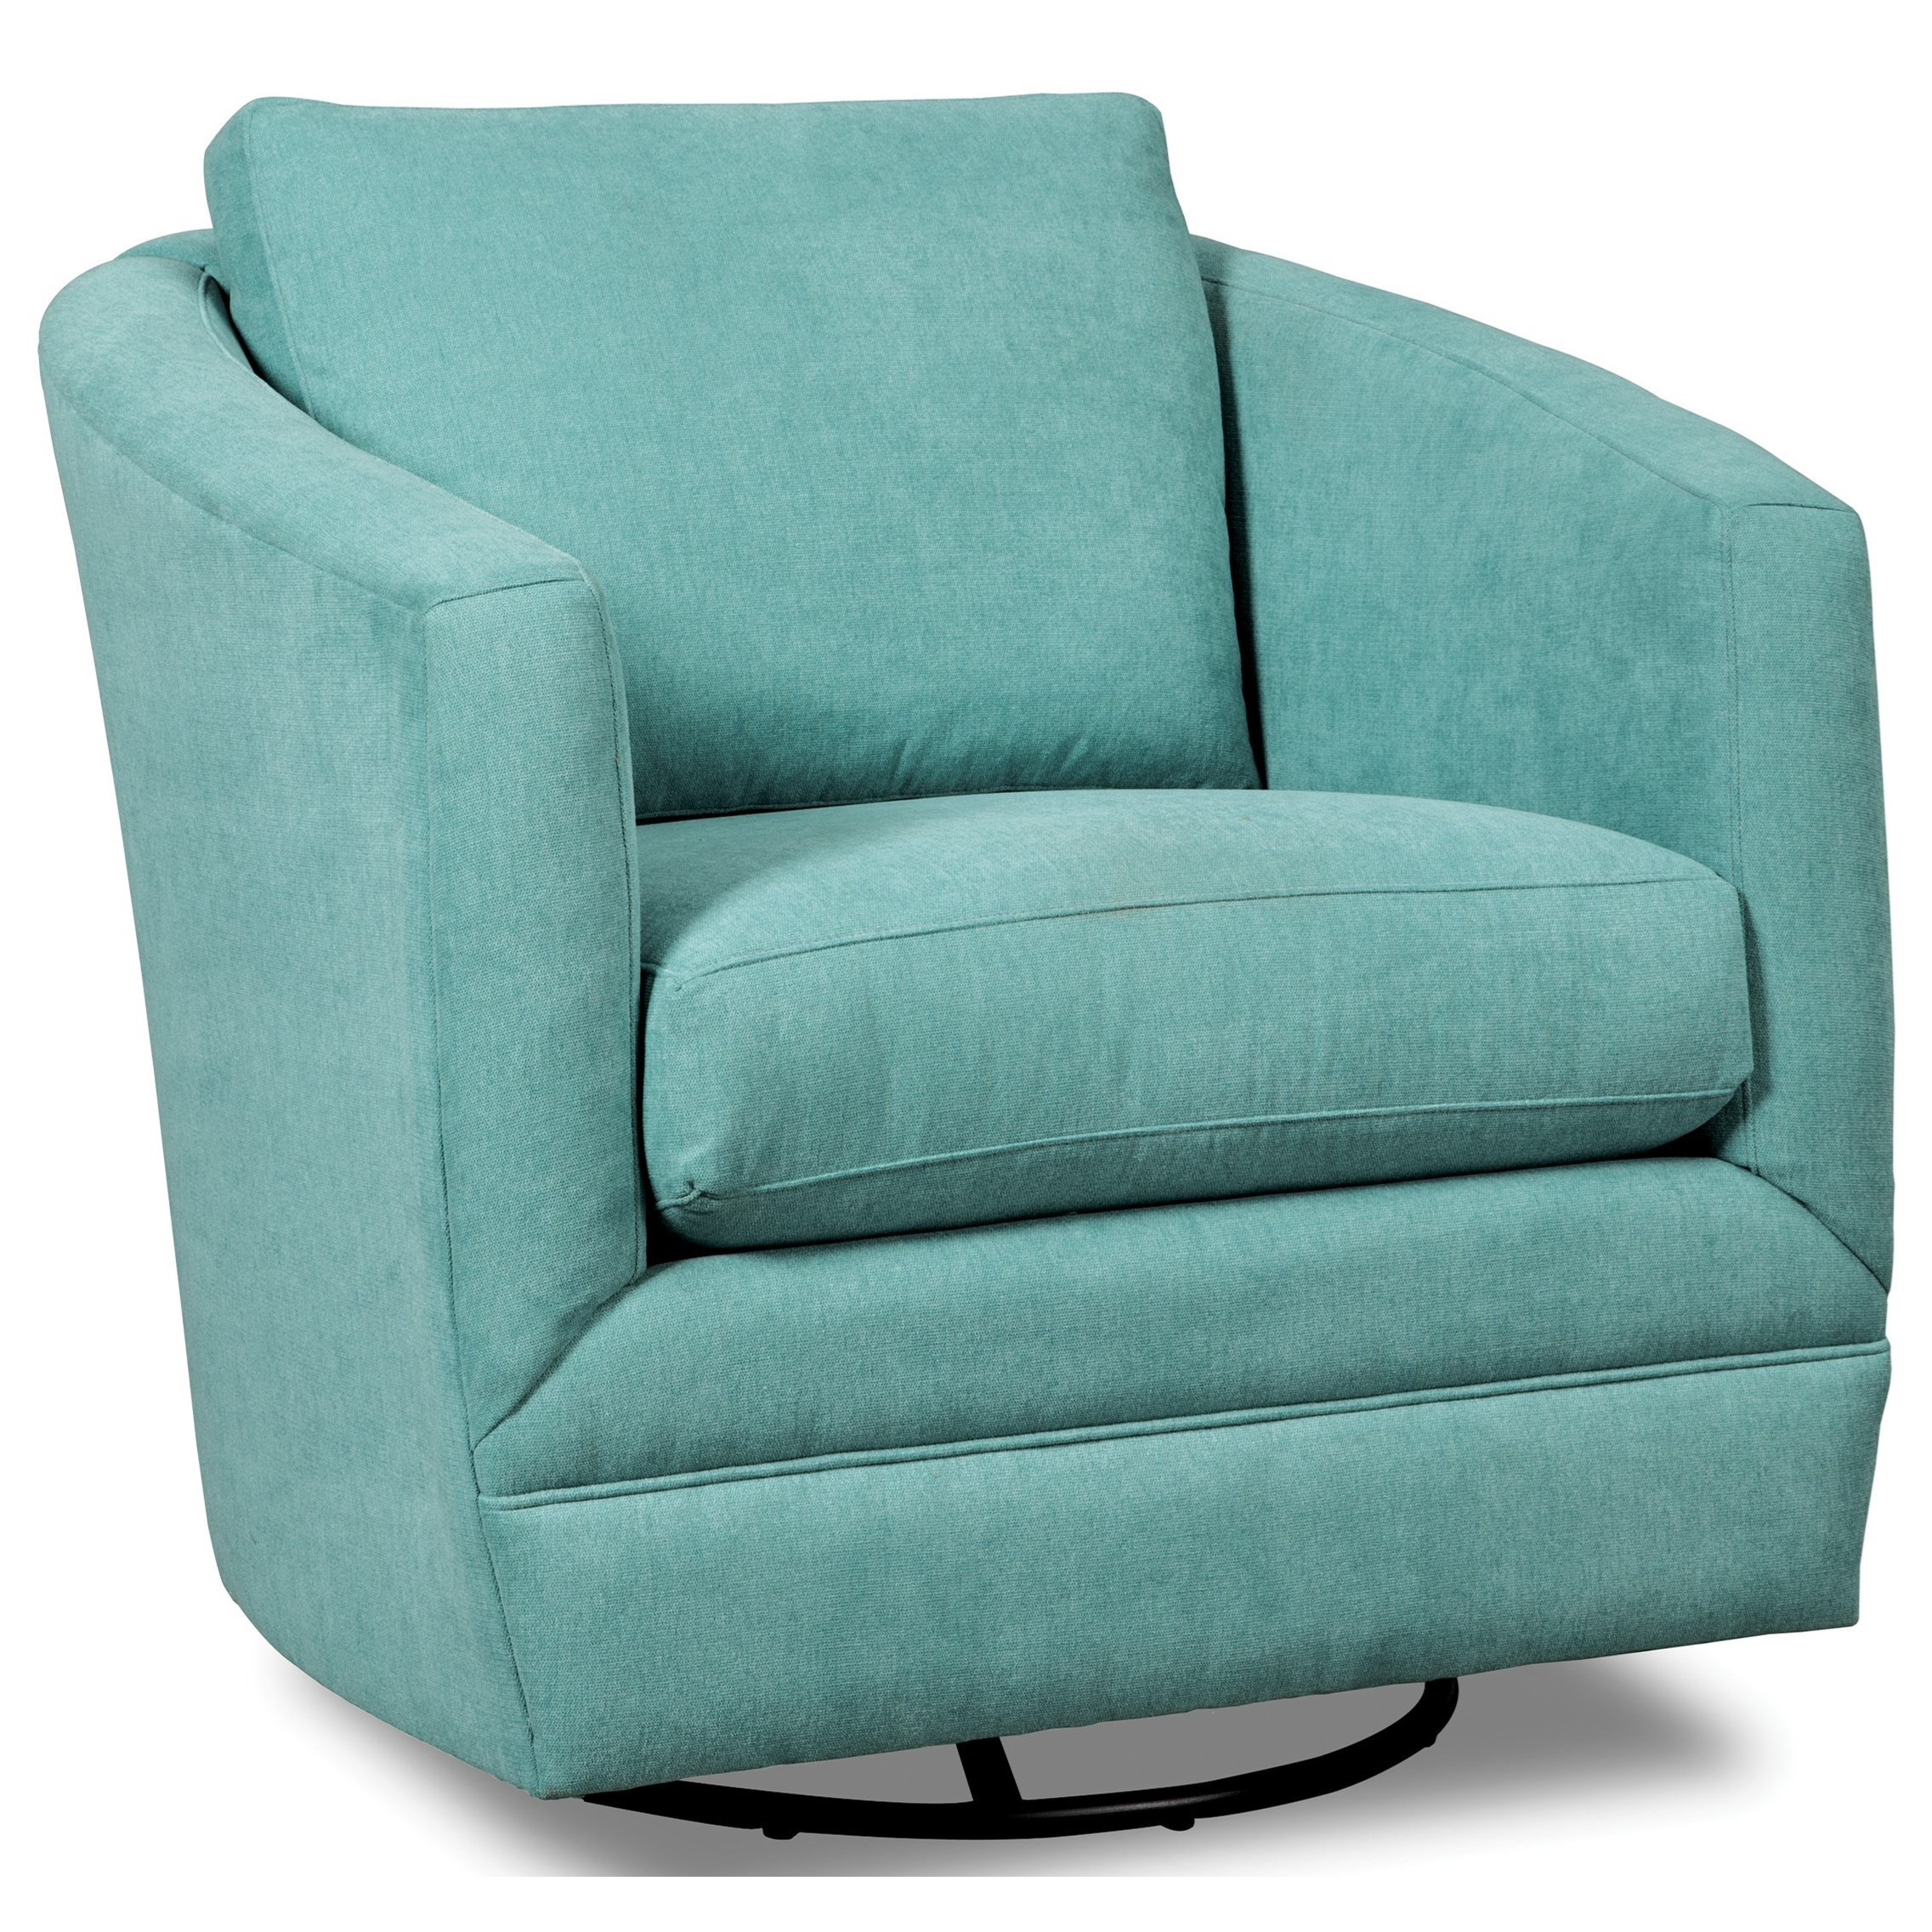 Accent Rex Meubles Accent Chairs Swivel Barrel Chair By Craftmaster At Stoney Creek Furniture